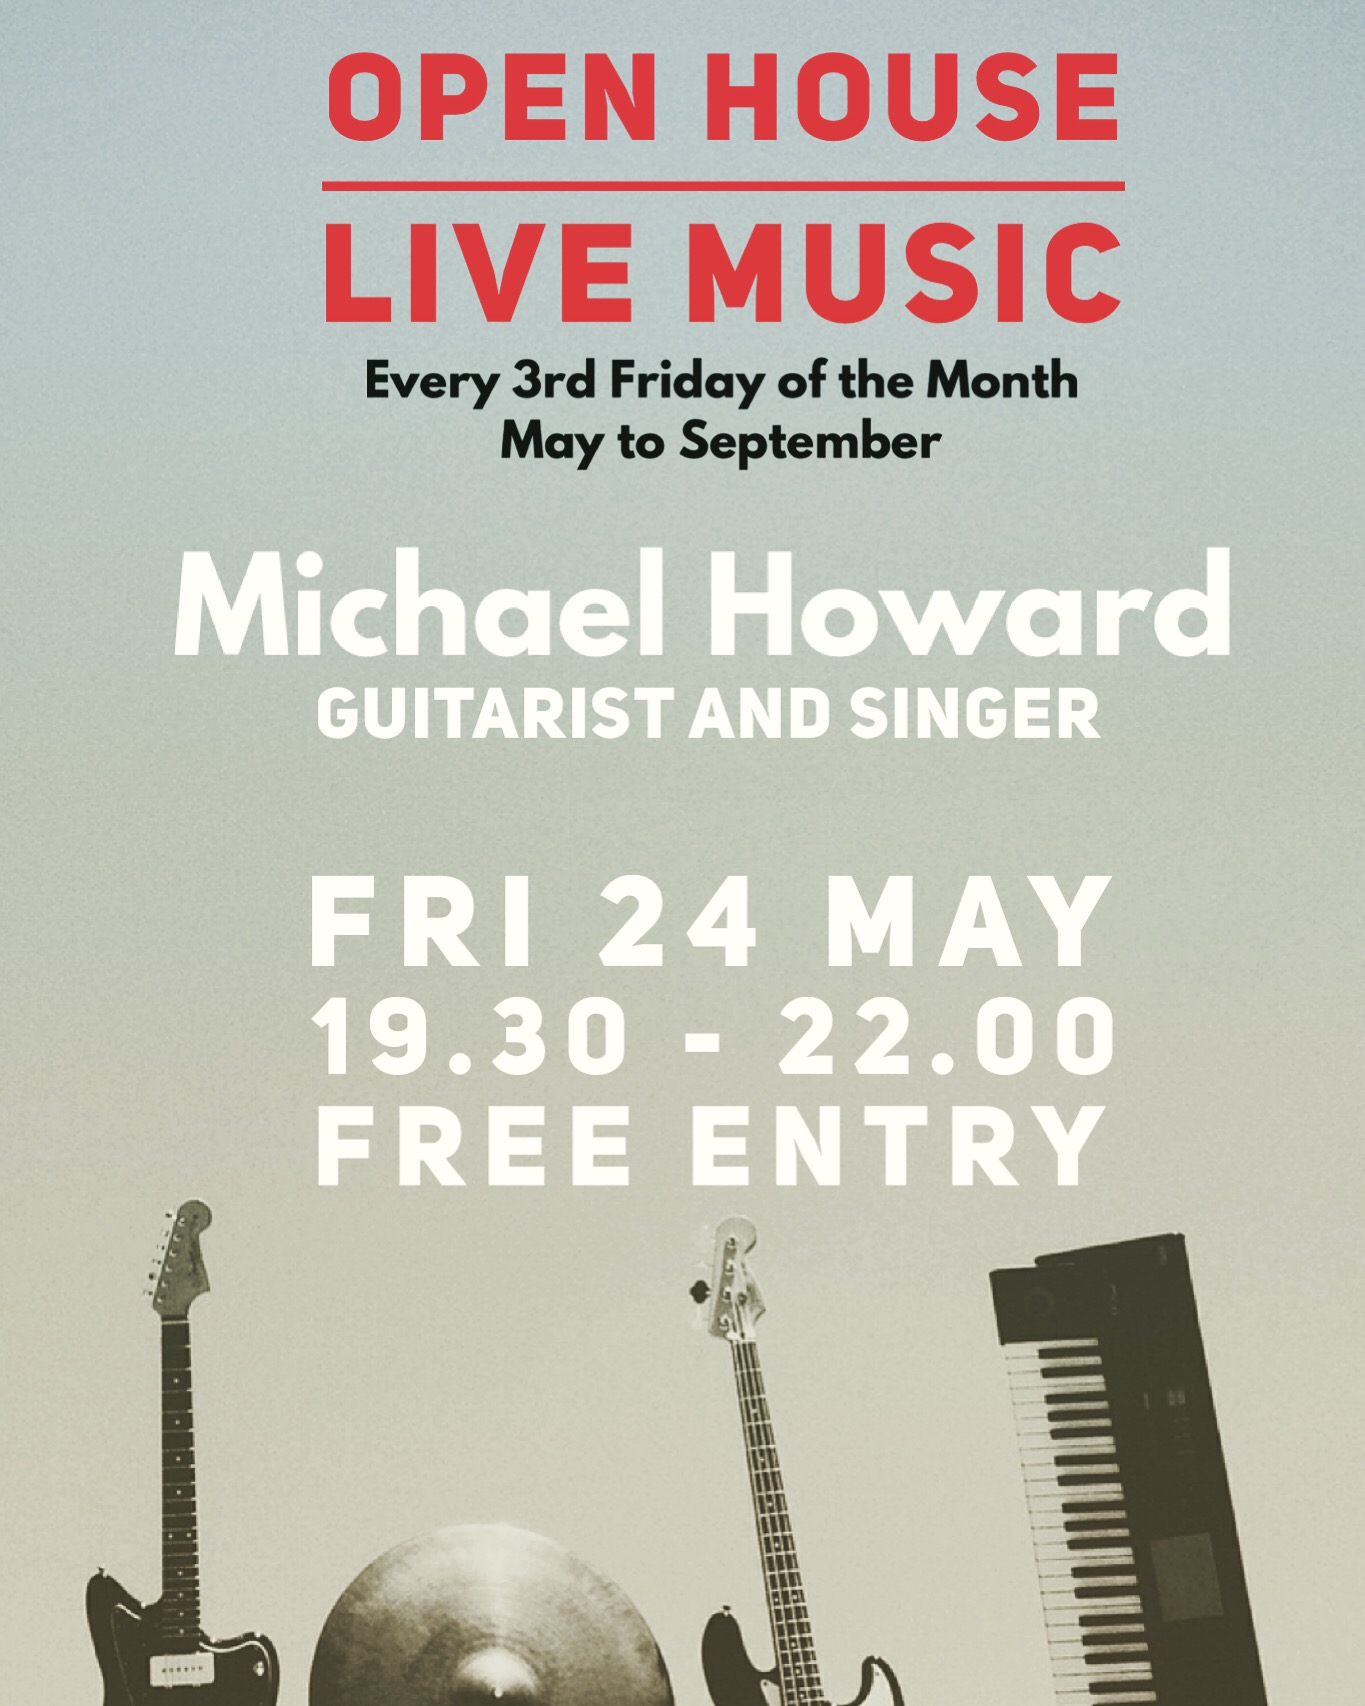 Open House Live Music by Guitarist and Singer Michael Howard - Free Entry